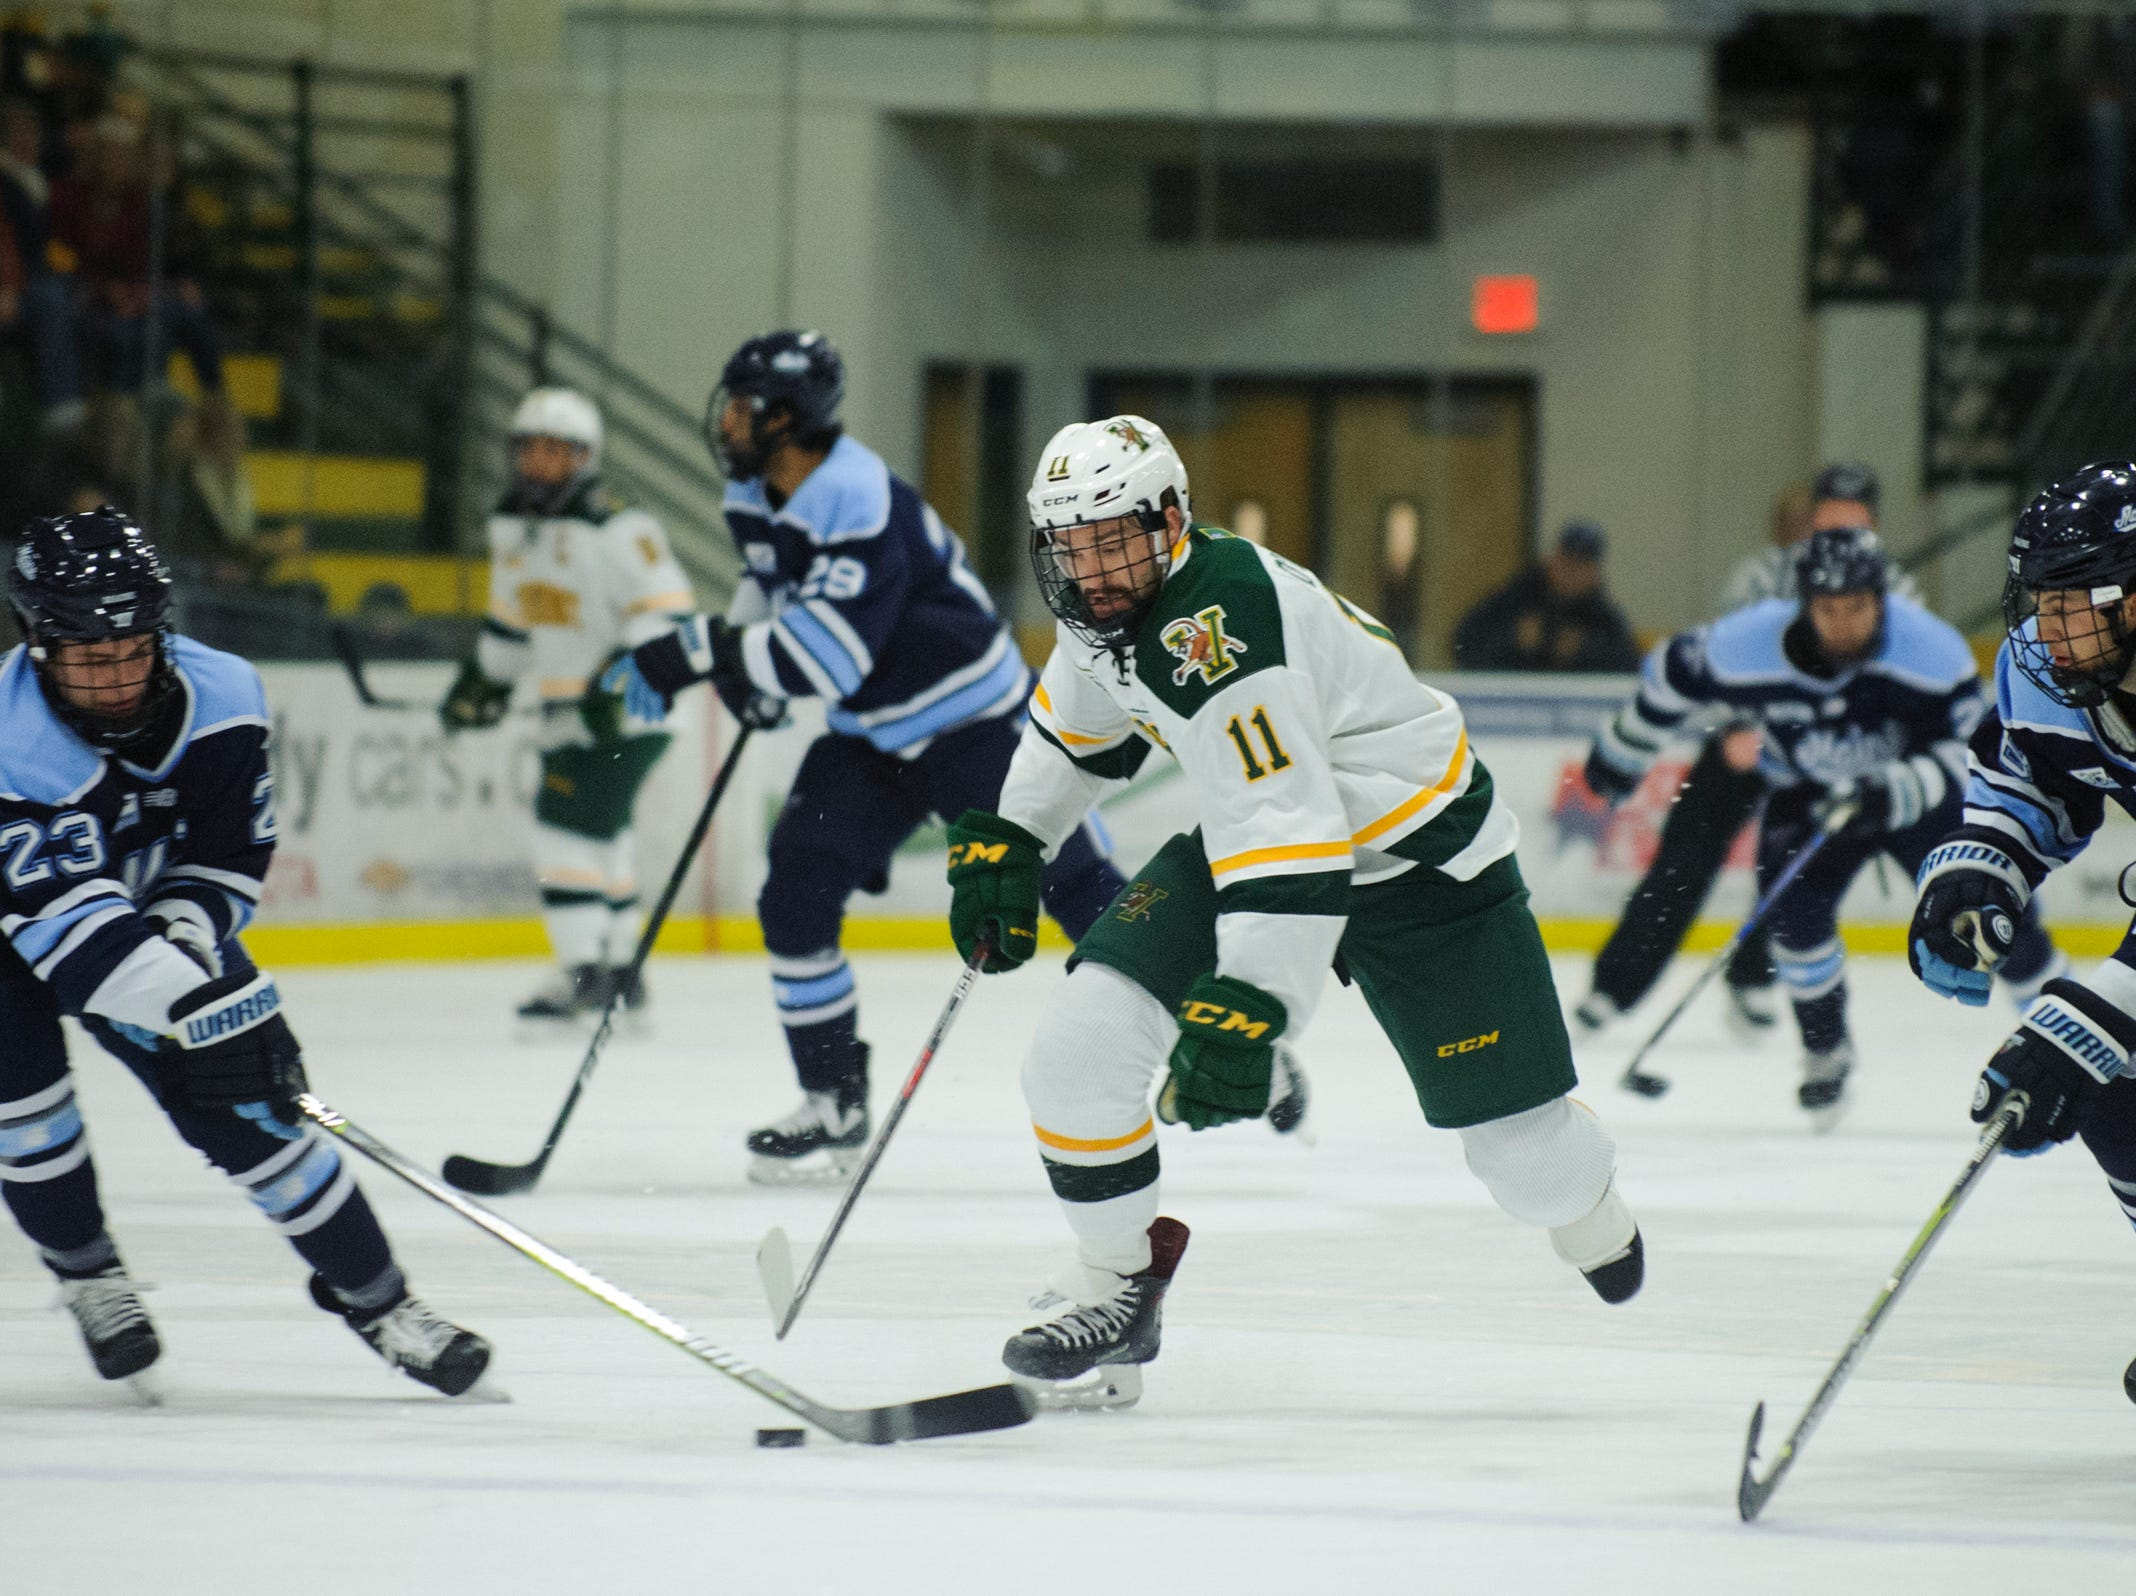 Vermont forward Conor O'Neil (11) battles for the puck during the men's hockey game between the Mine Black Bears and the Vermont Catamounts at Gutterson Field House on Friday night November 30, 2018 in Burlington.